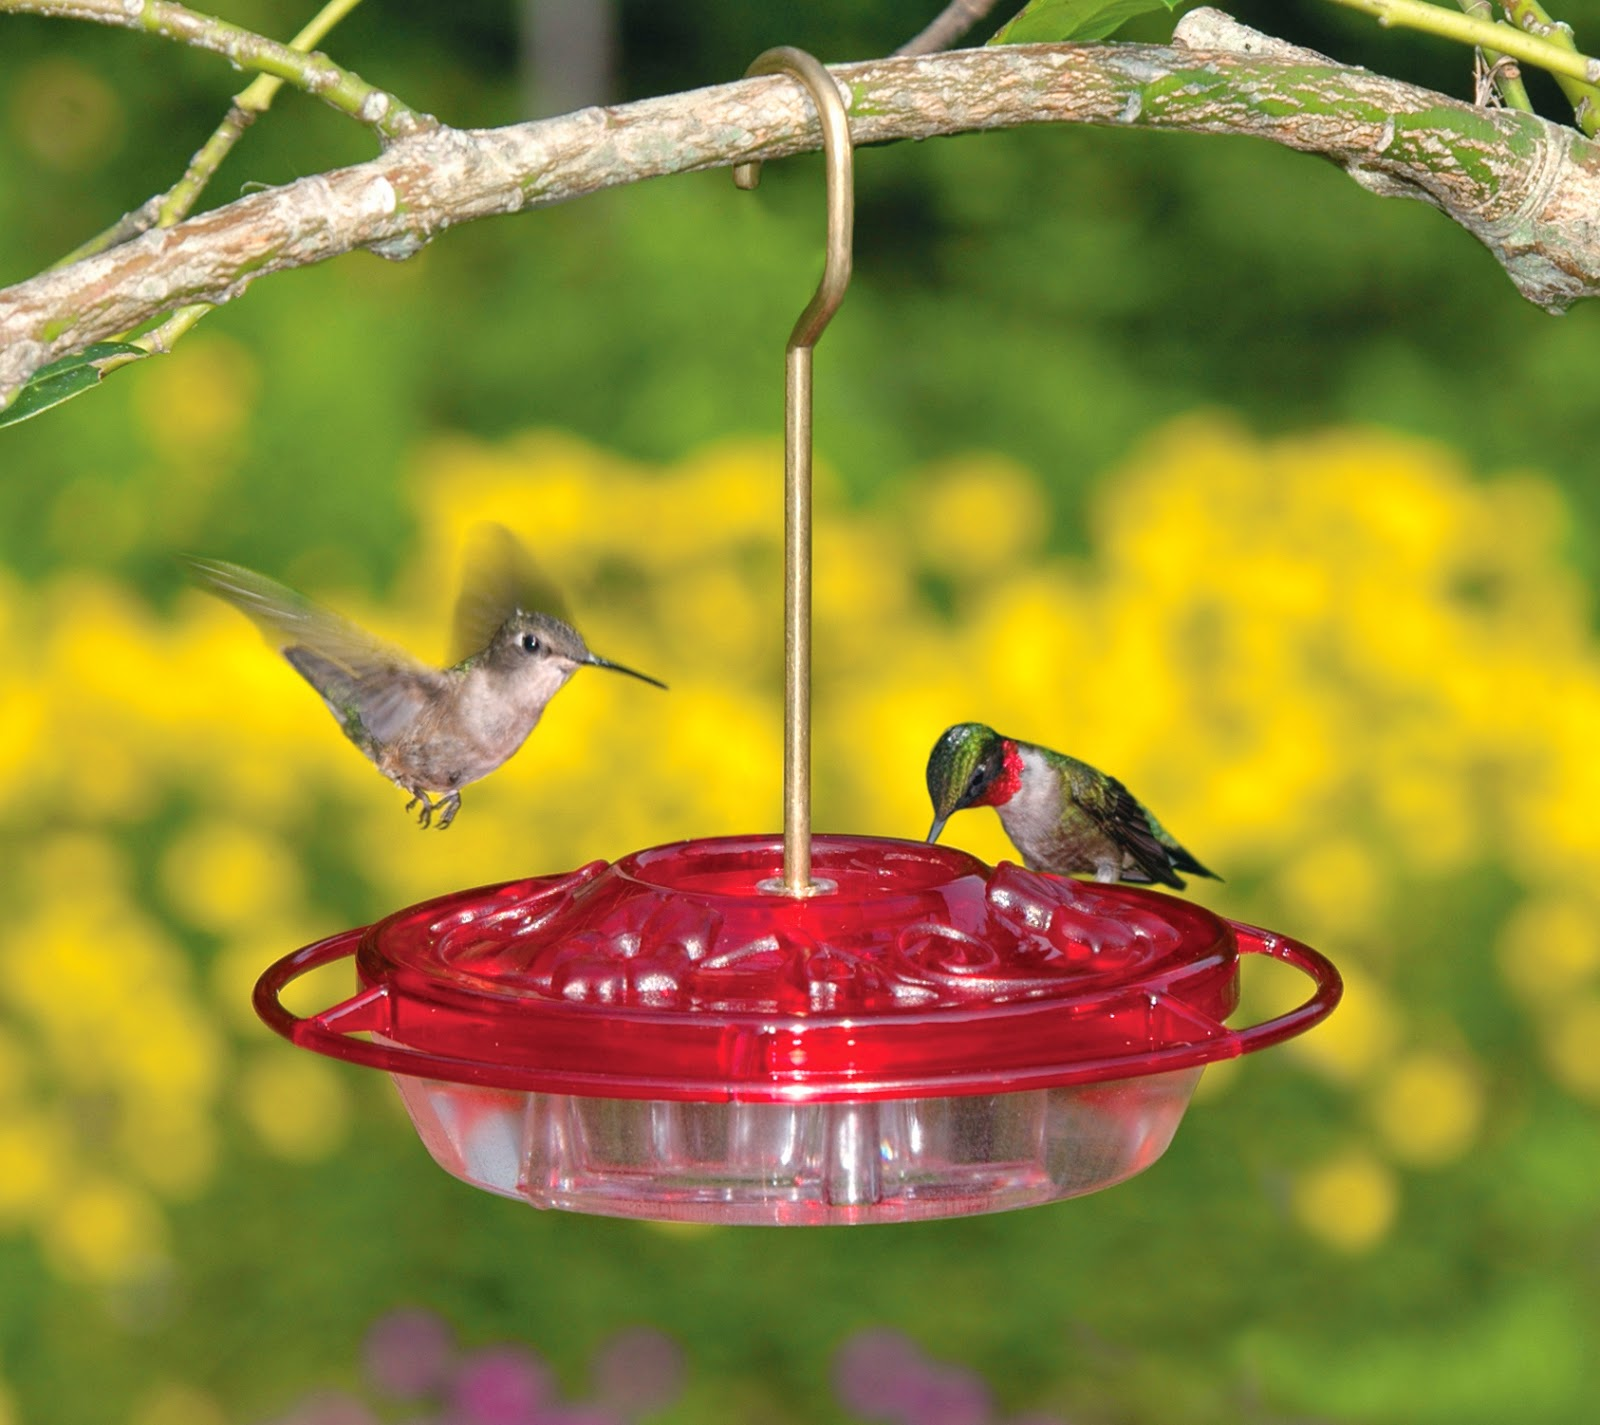 How Long Can A Hummingbird Go Without Food